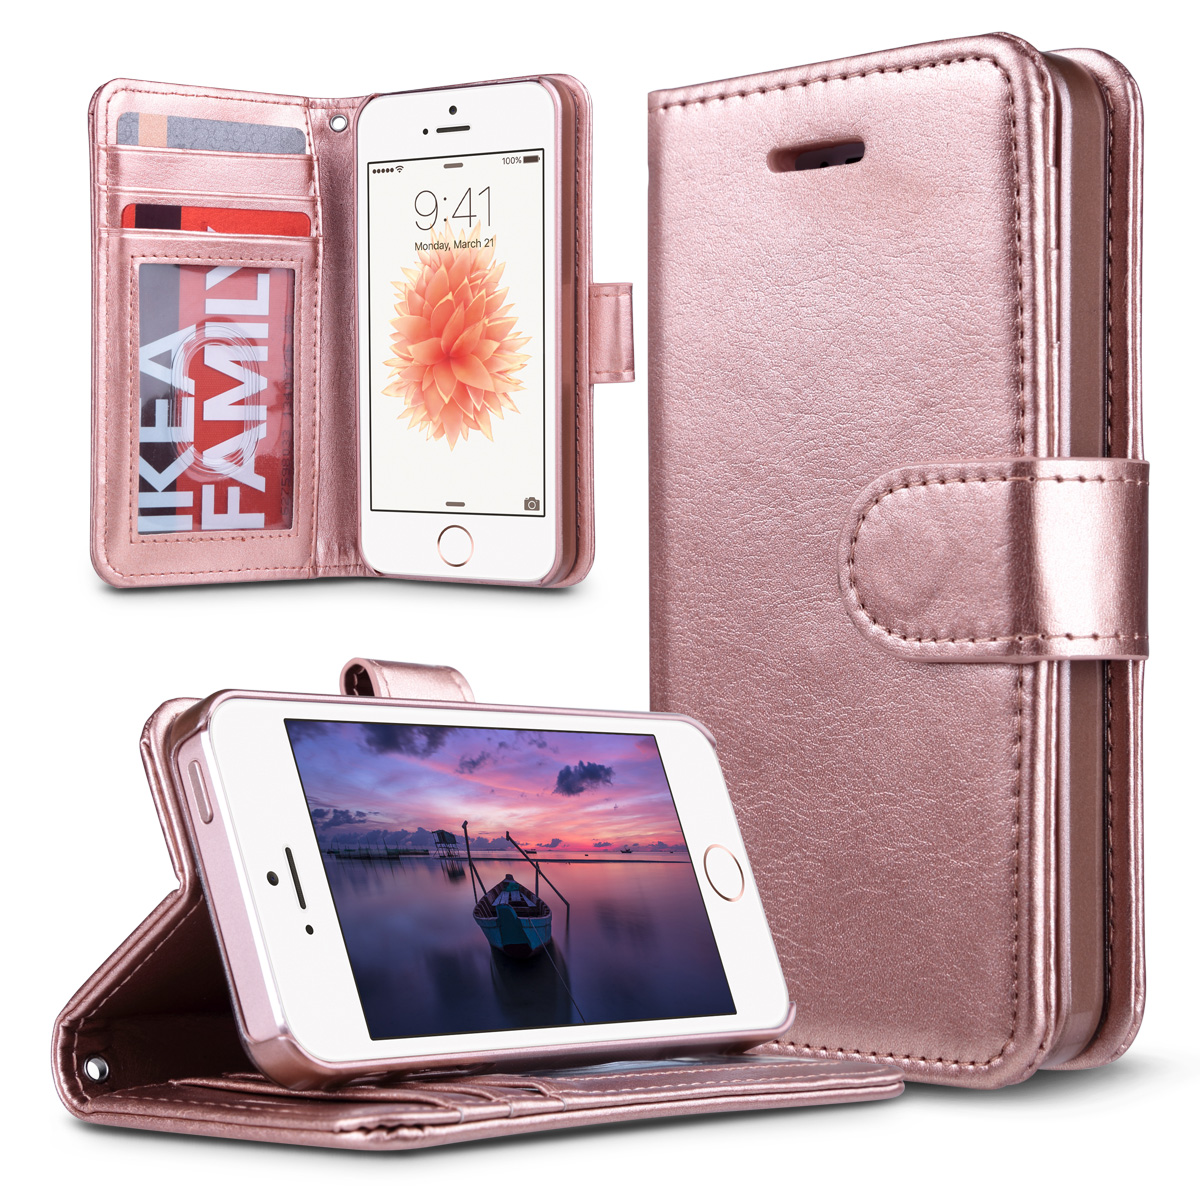 uk availability 76700 b24bf iPhone 5s Case, iPhone 5 Case, ULAK iPhone 5s/5/SE Wallet Case, Fashion PU  Leather Magnet Wallet Flip Case Cover with Built-in Credit Card/ID Card ...